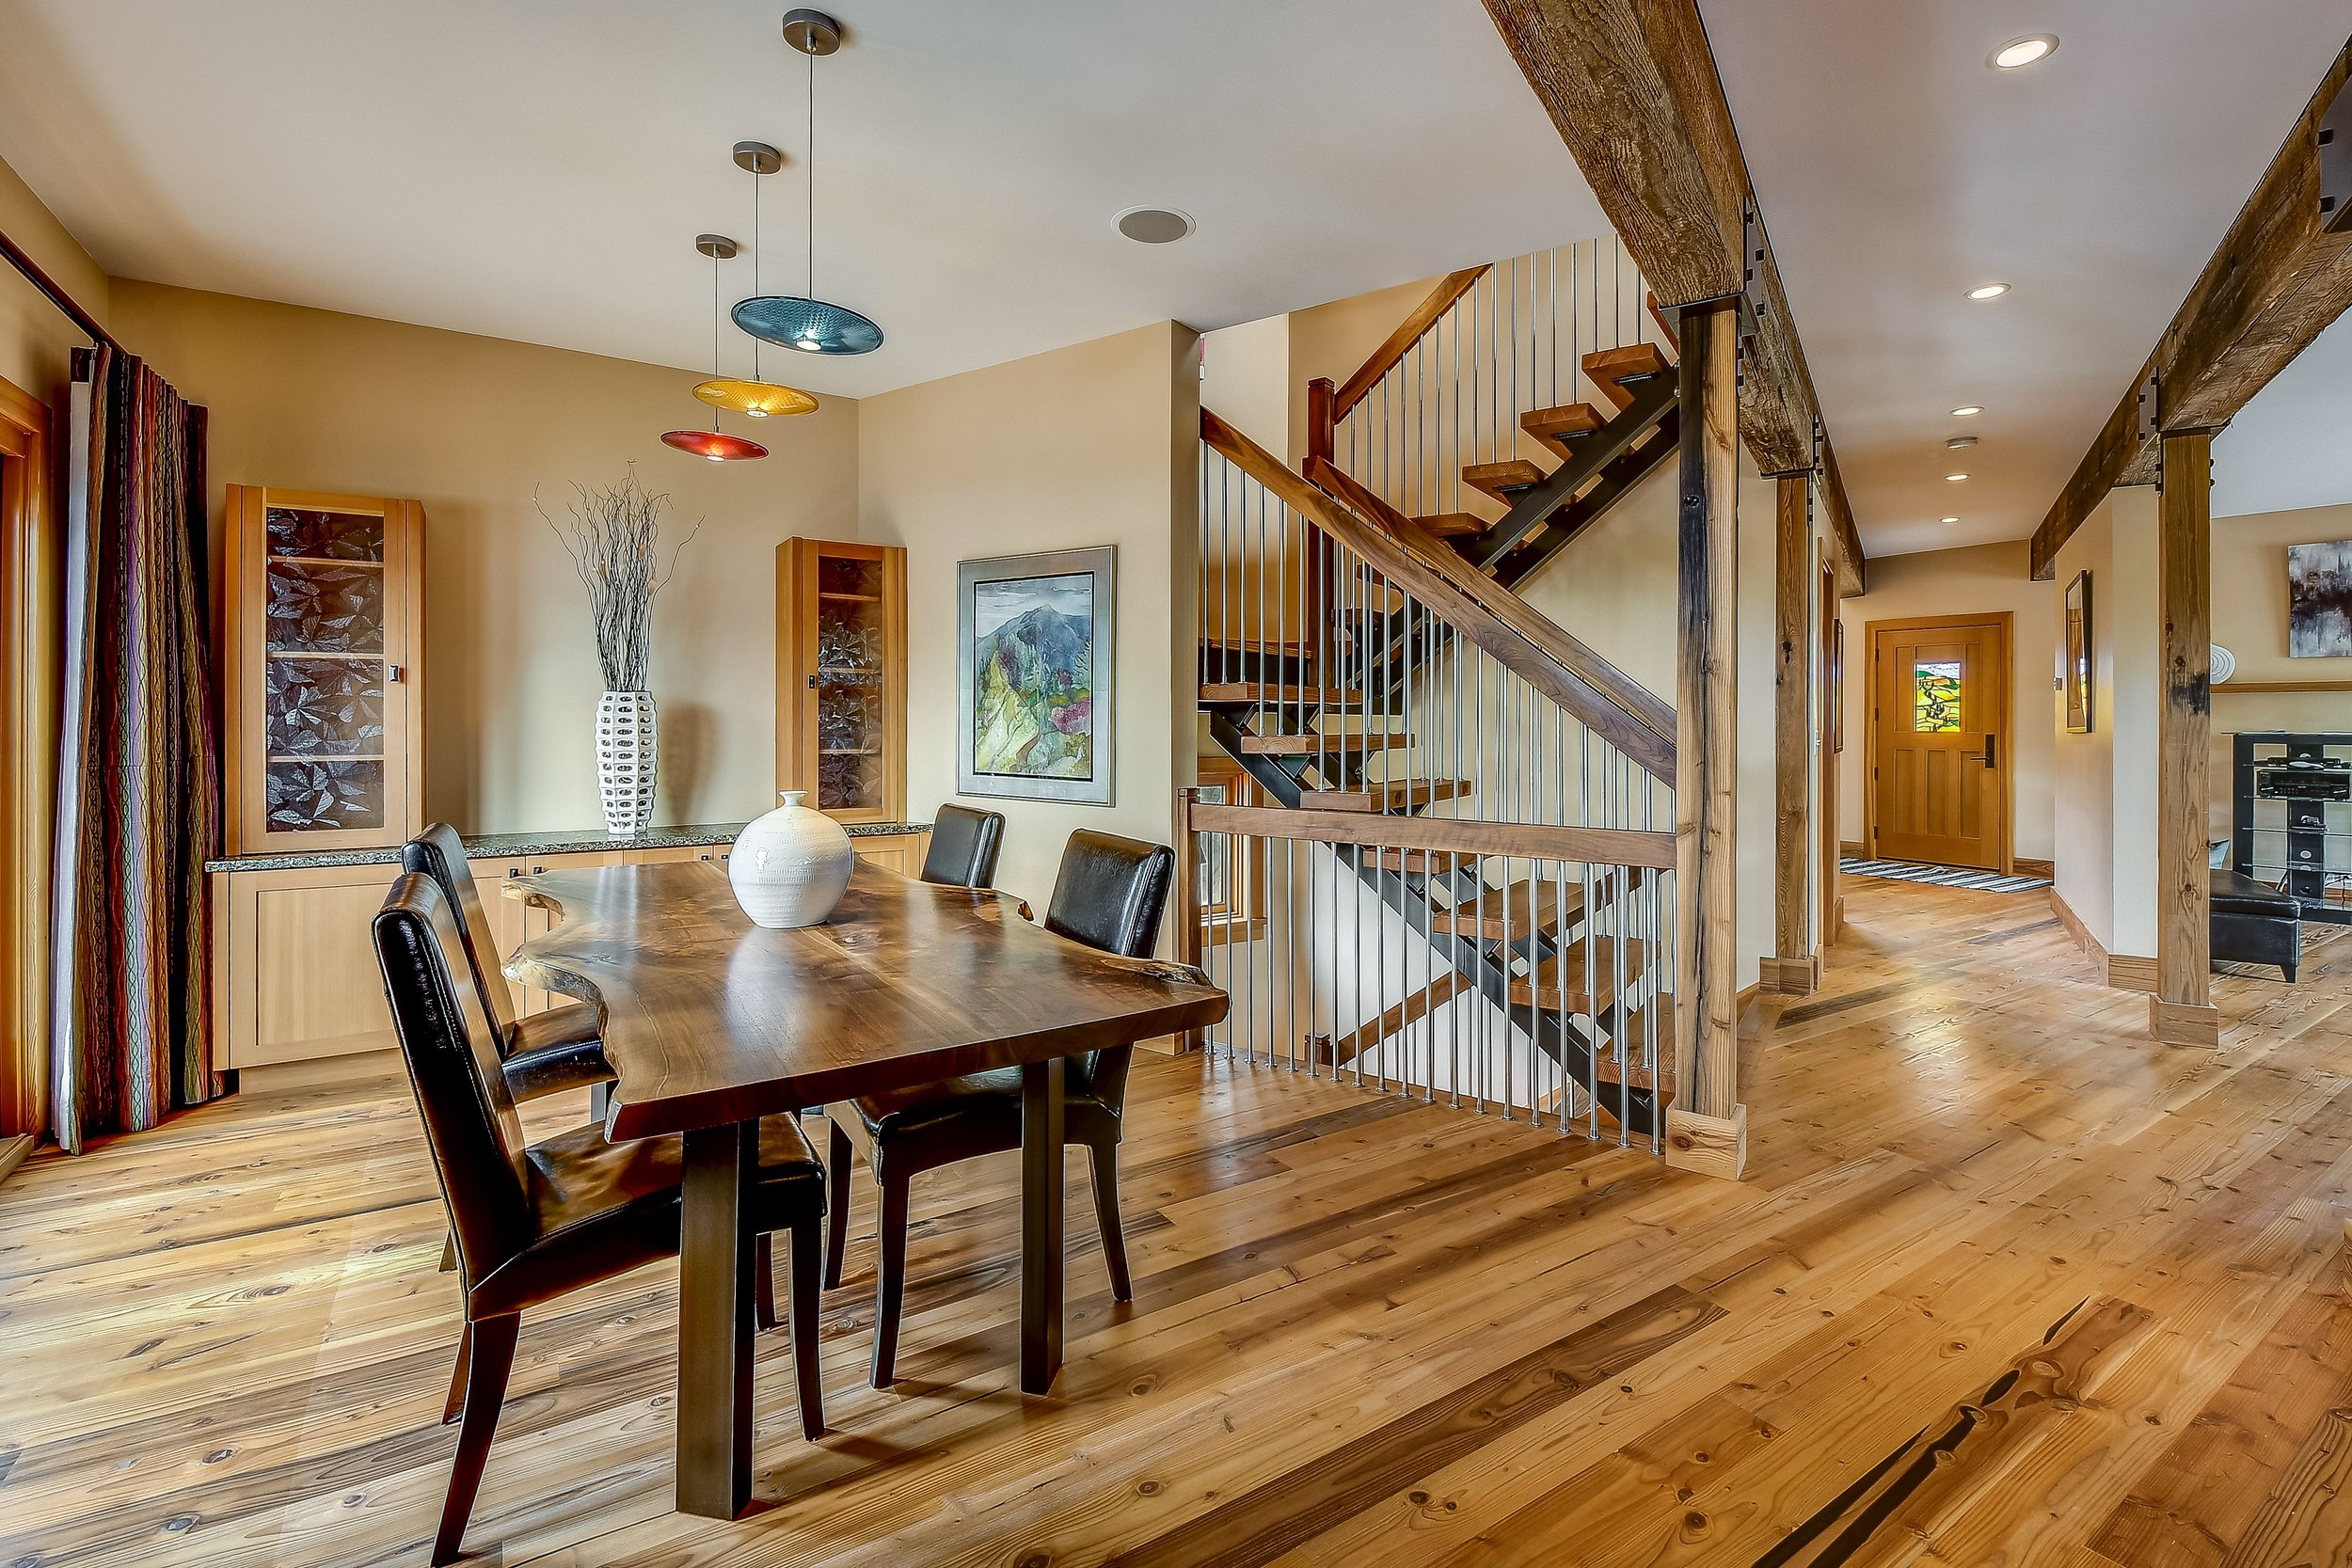 The spacious dining area features custom built ins designed by a local Ballard craftsman.